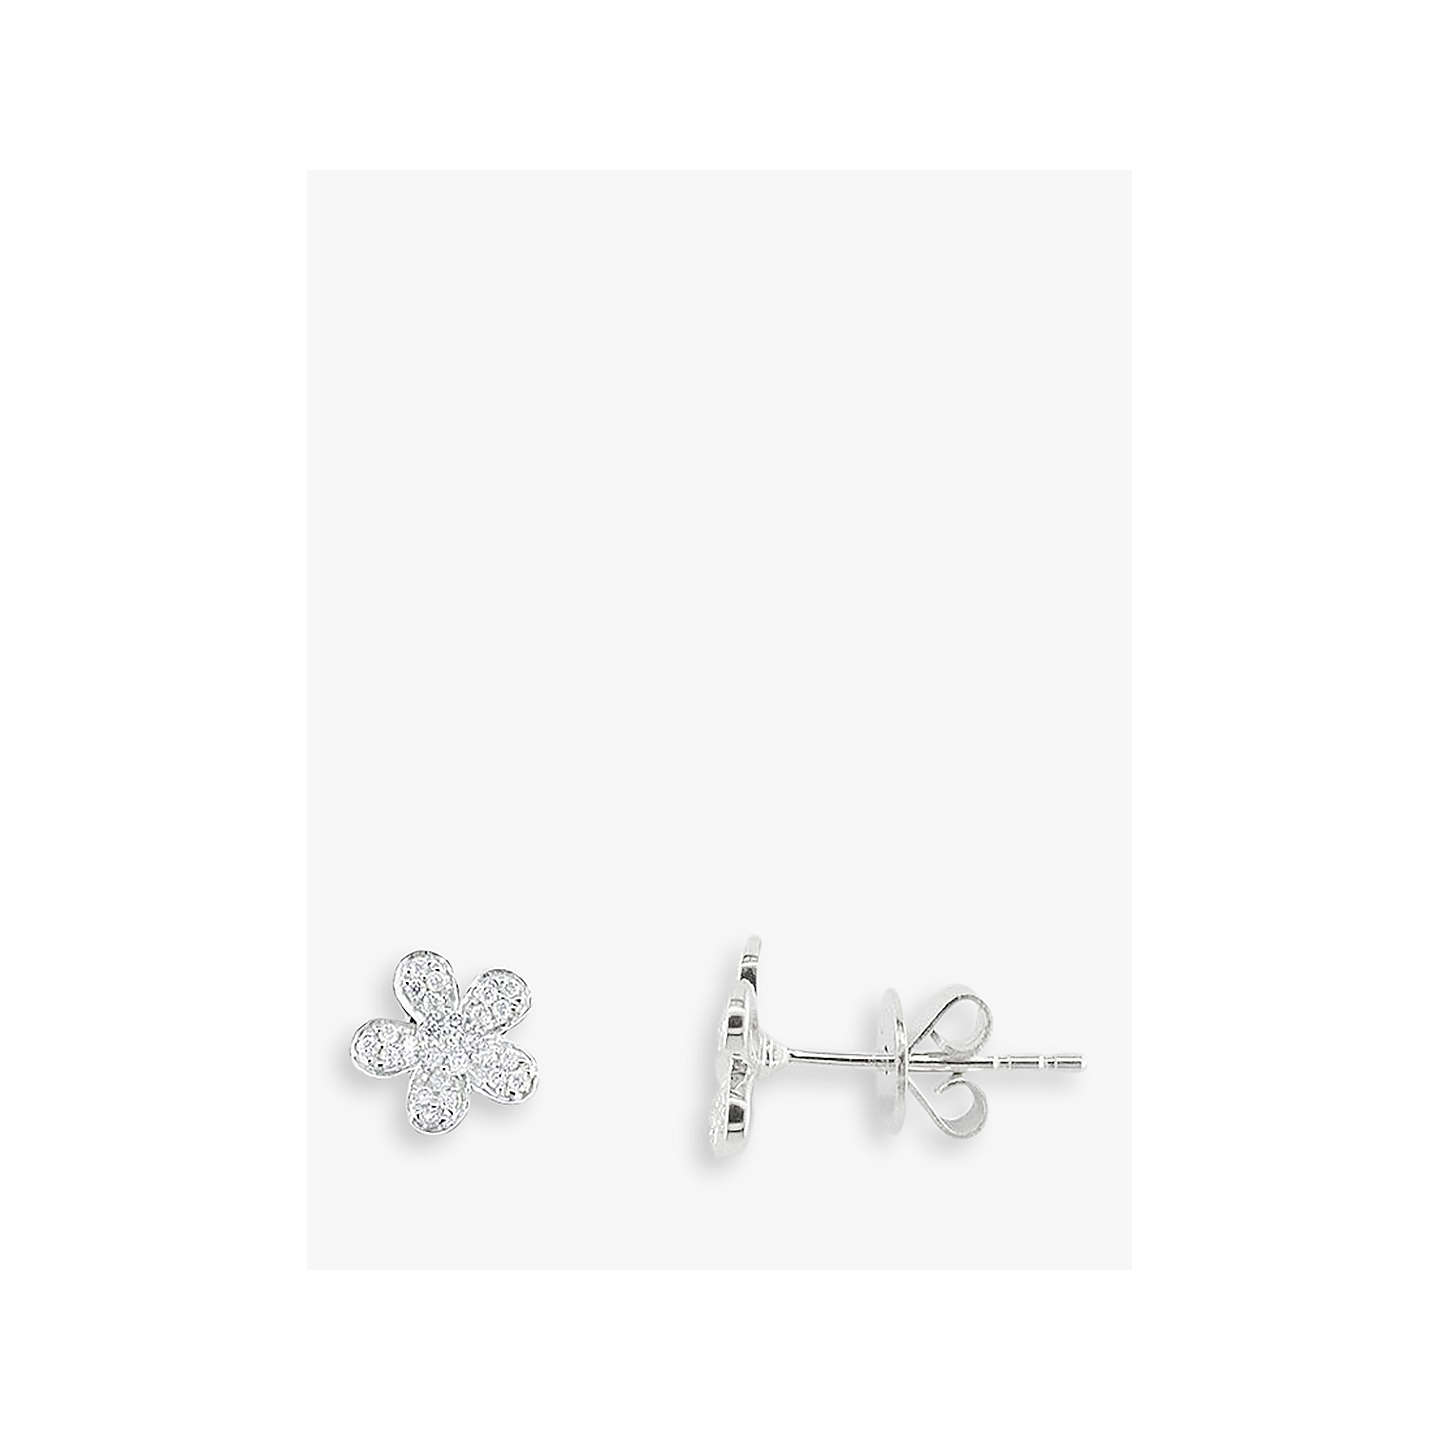 adamar diamond studs earring jewellery flower scattered stud diamonds img floral big